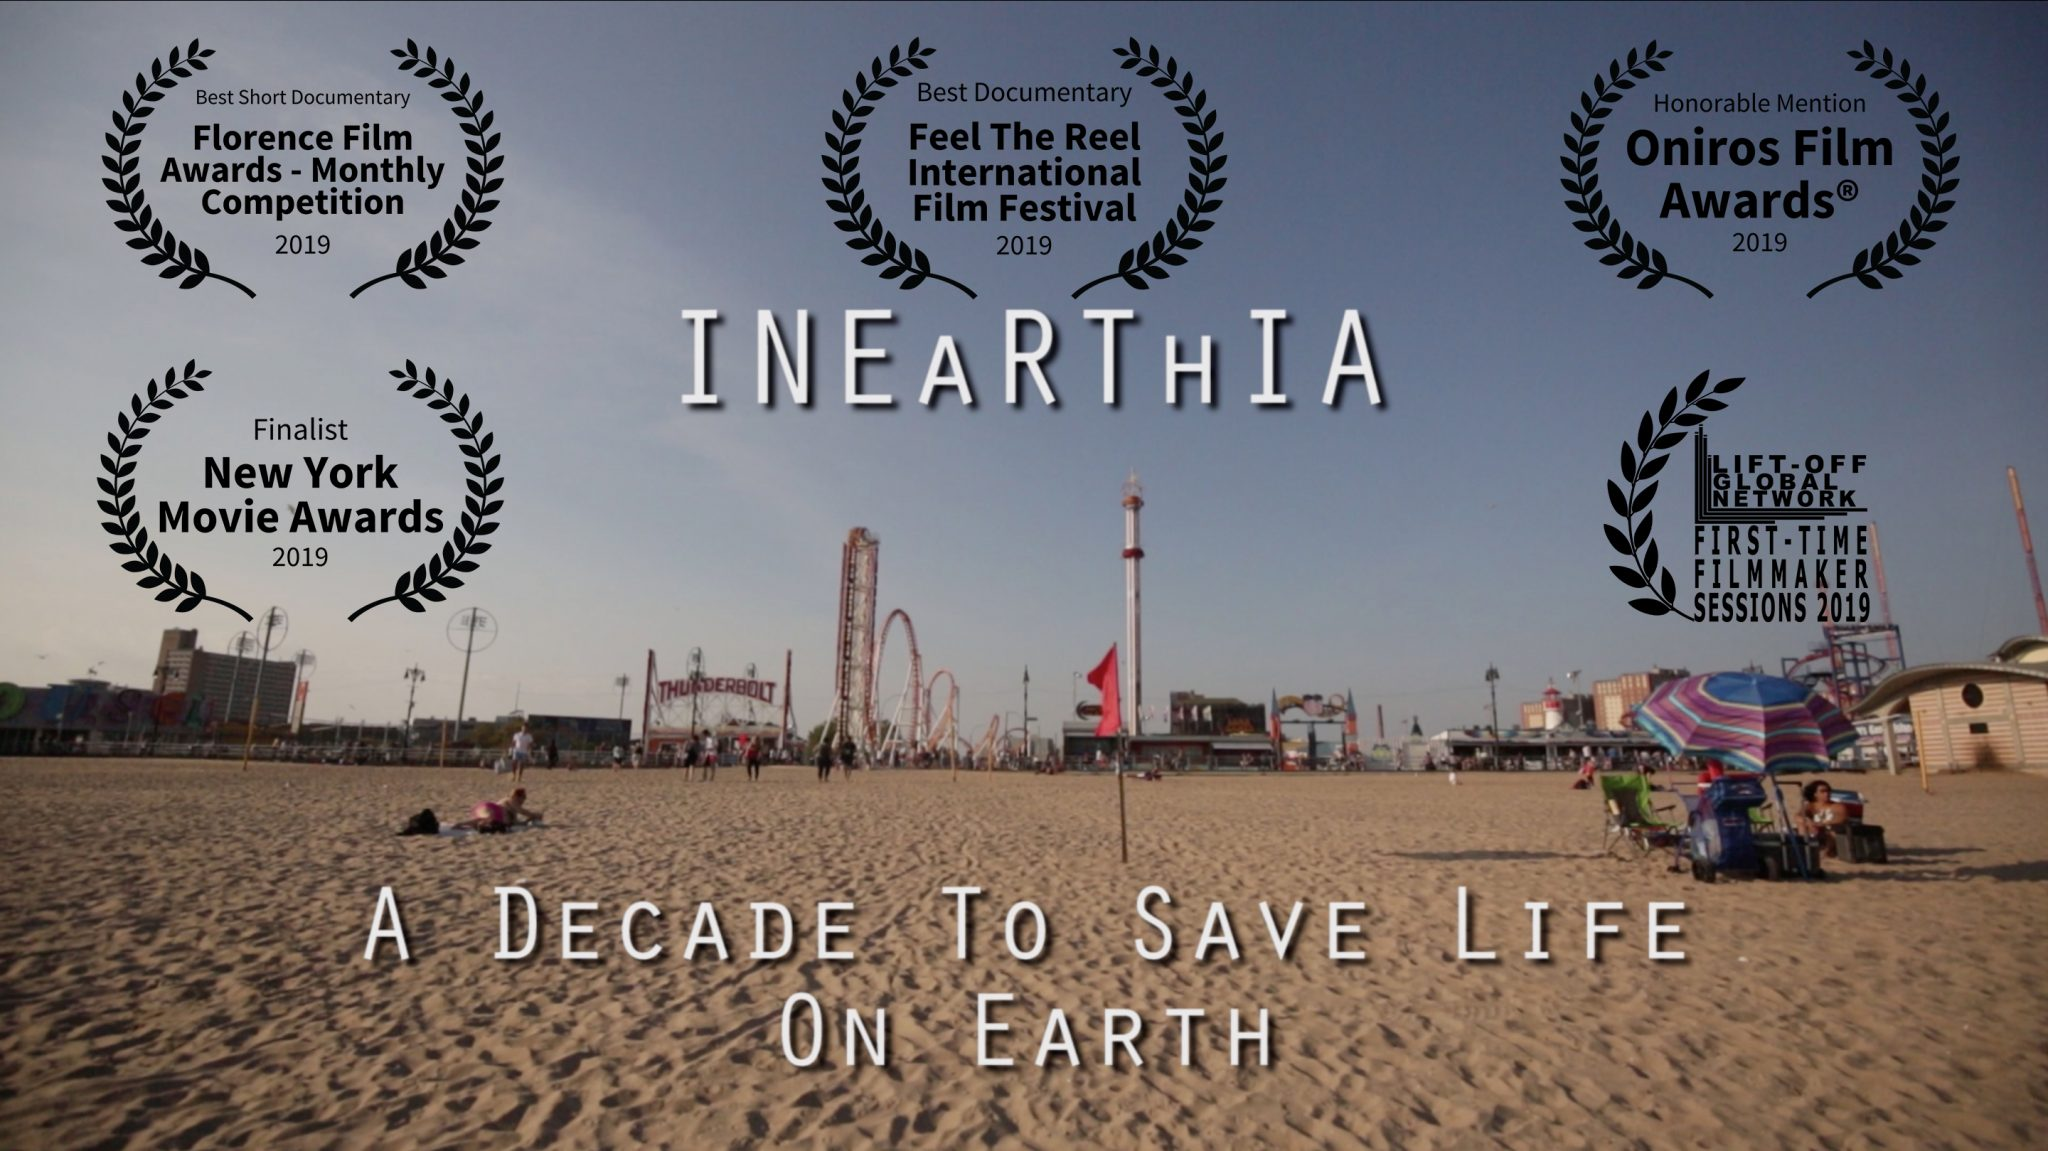 INEARTHIA – A Decade To Save Life On Earth